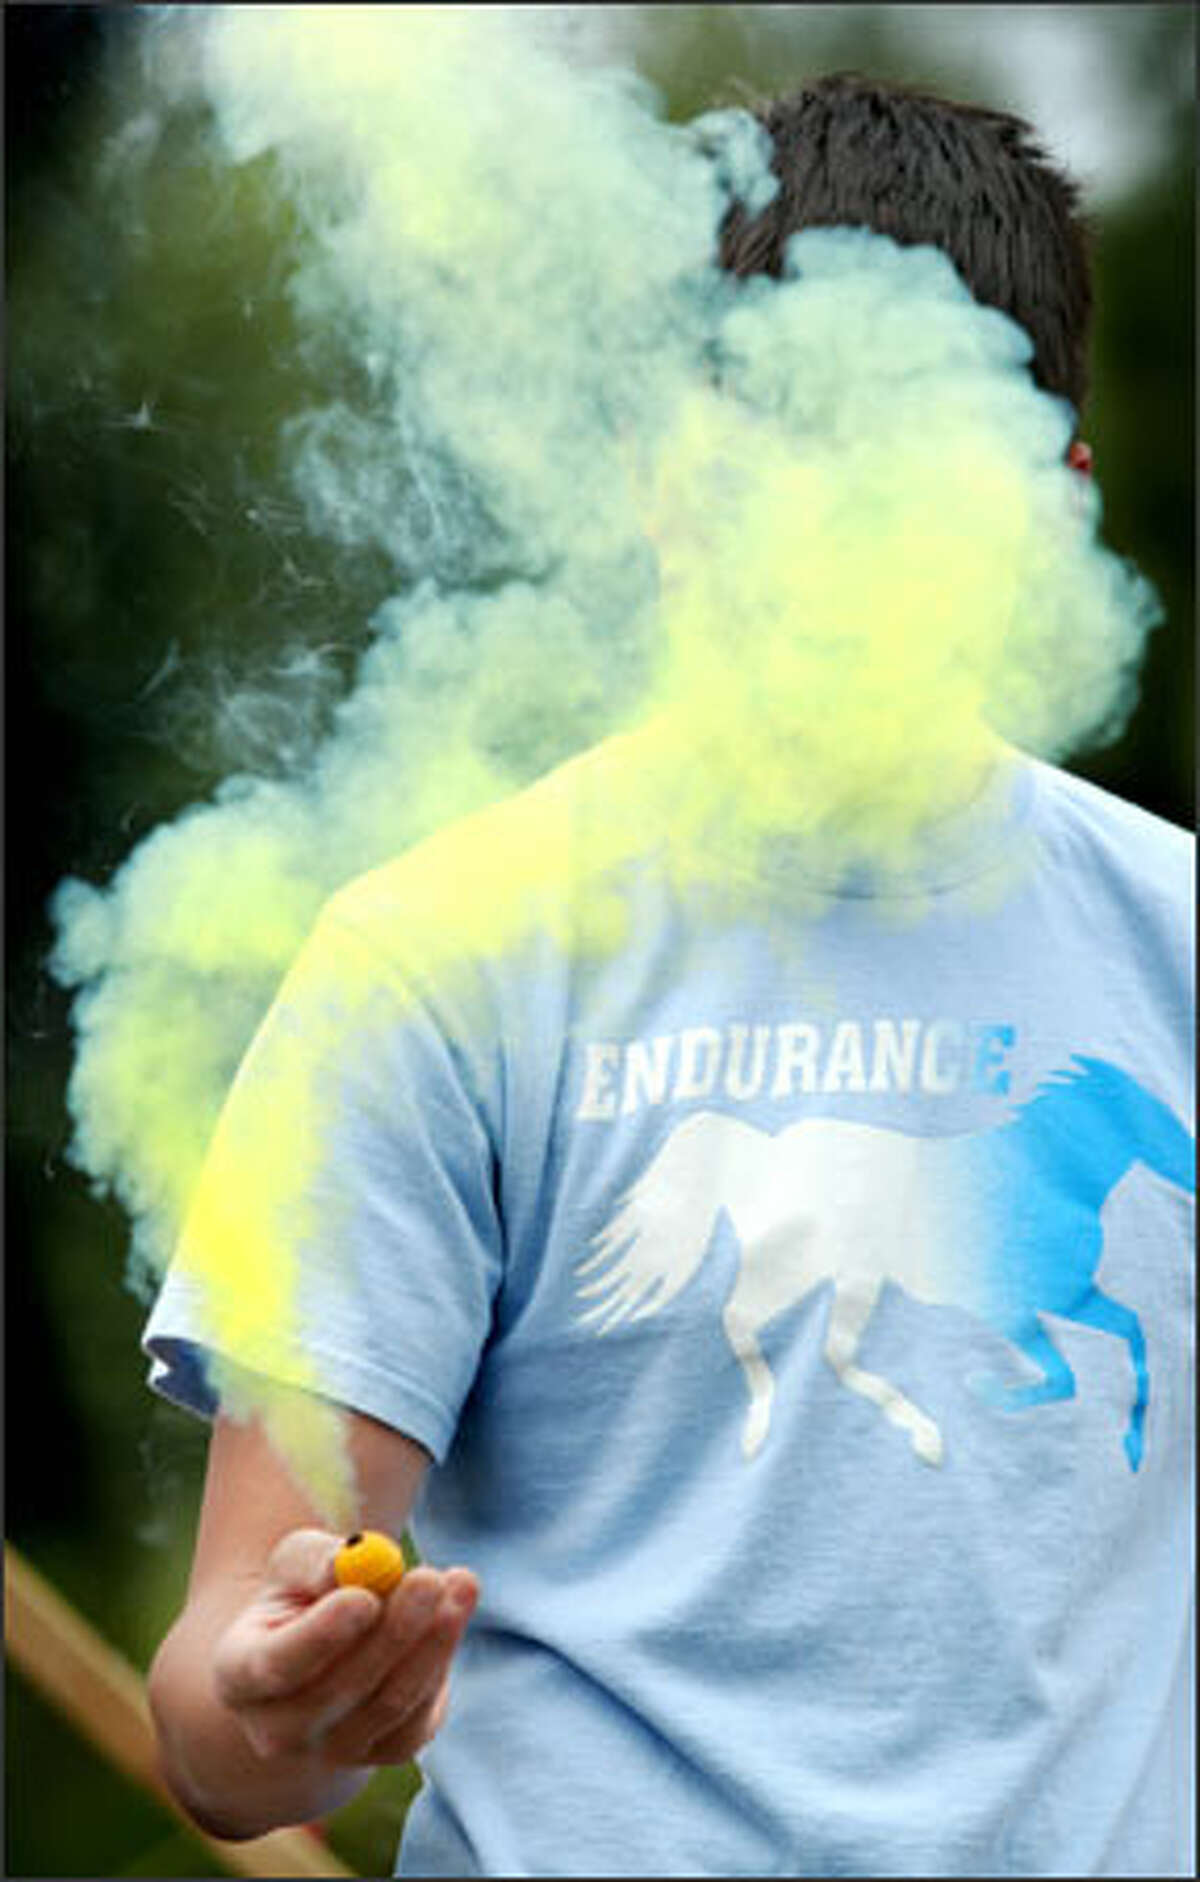 This is no smoke screen: David Montano tests a smoke bomb at Boom City, the Tulalip Tribes' fireworks emporium. Montano and his friends were shopping yesterday for fireworks for the Fourth of July.